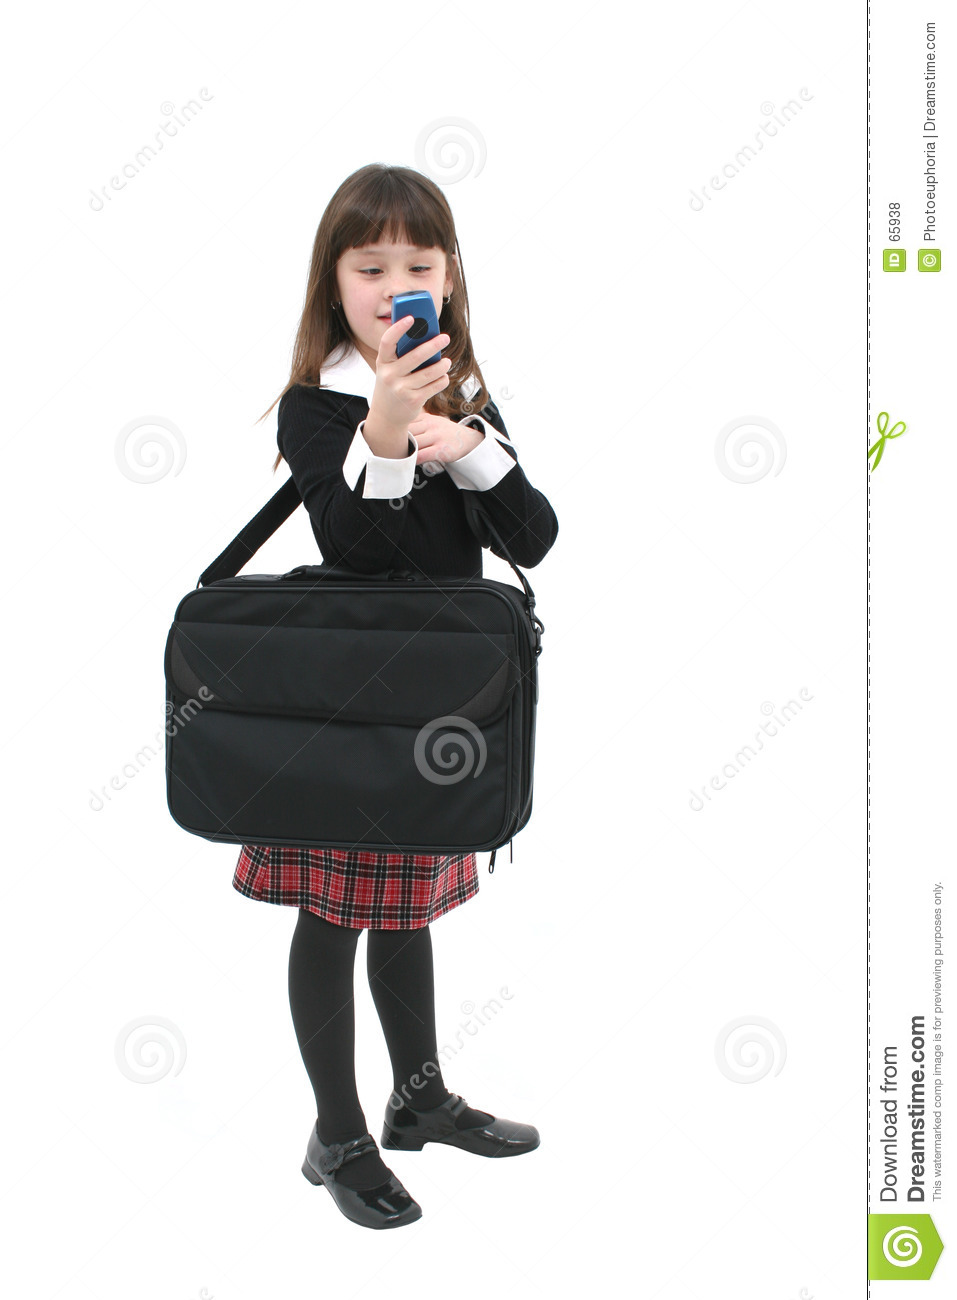 Child with Cellphone